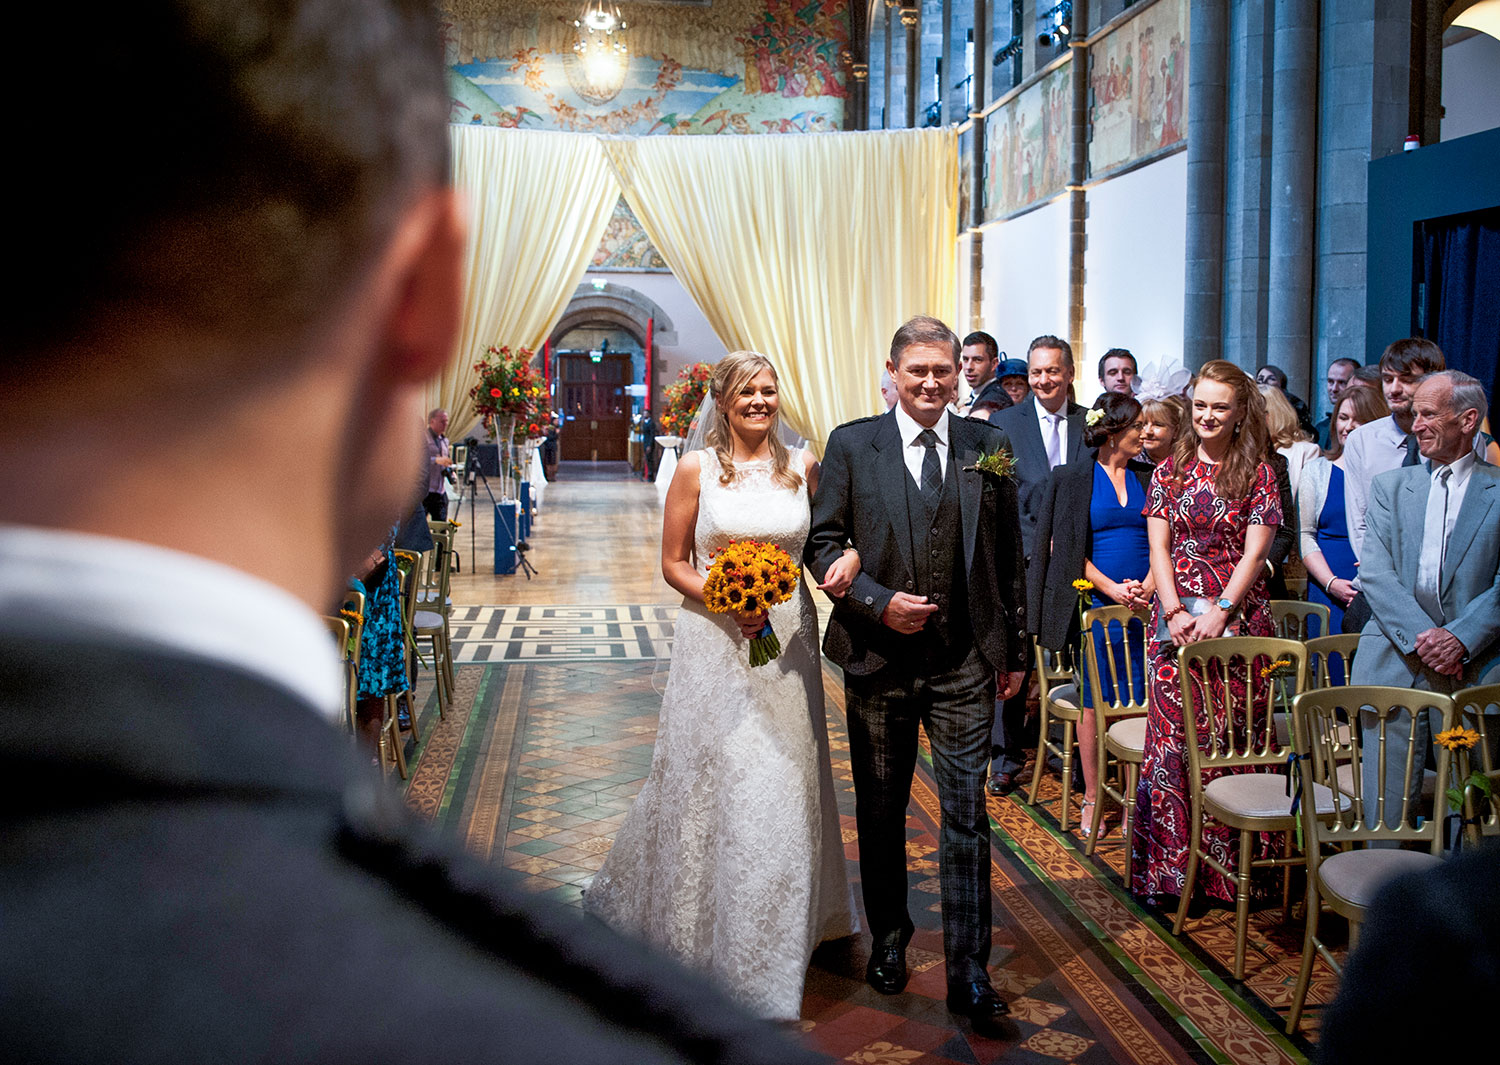 I was just standing behind the groom as the bride walked down the aisle to capture her big smile and the happiness as she approached her groom, best spot for the photographer during the wedding ceremony